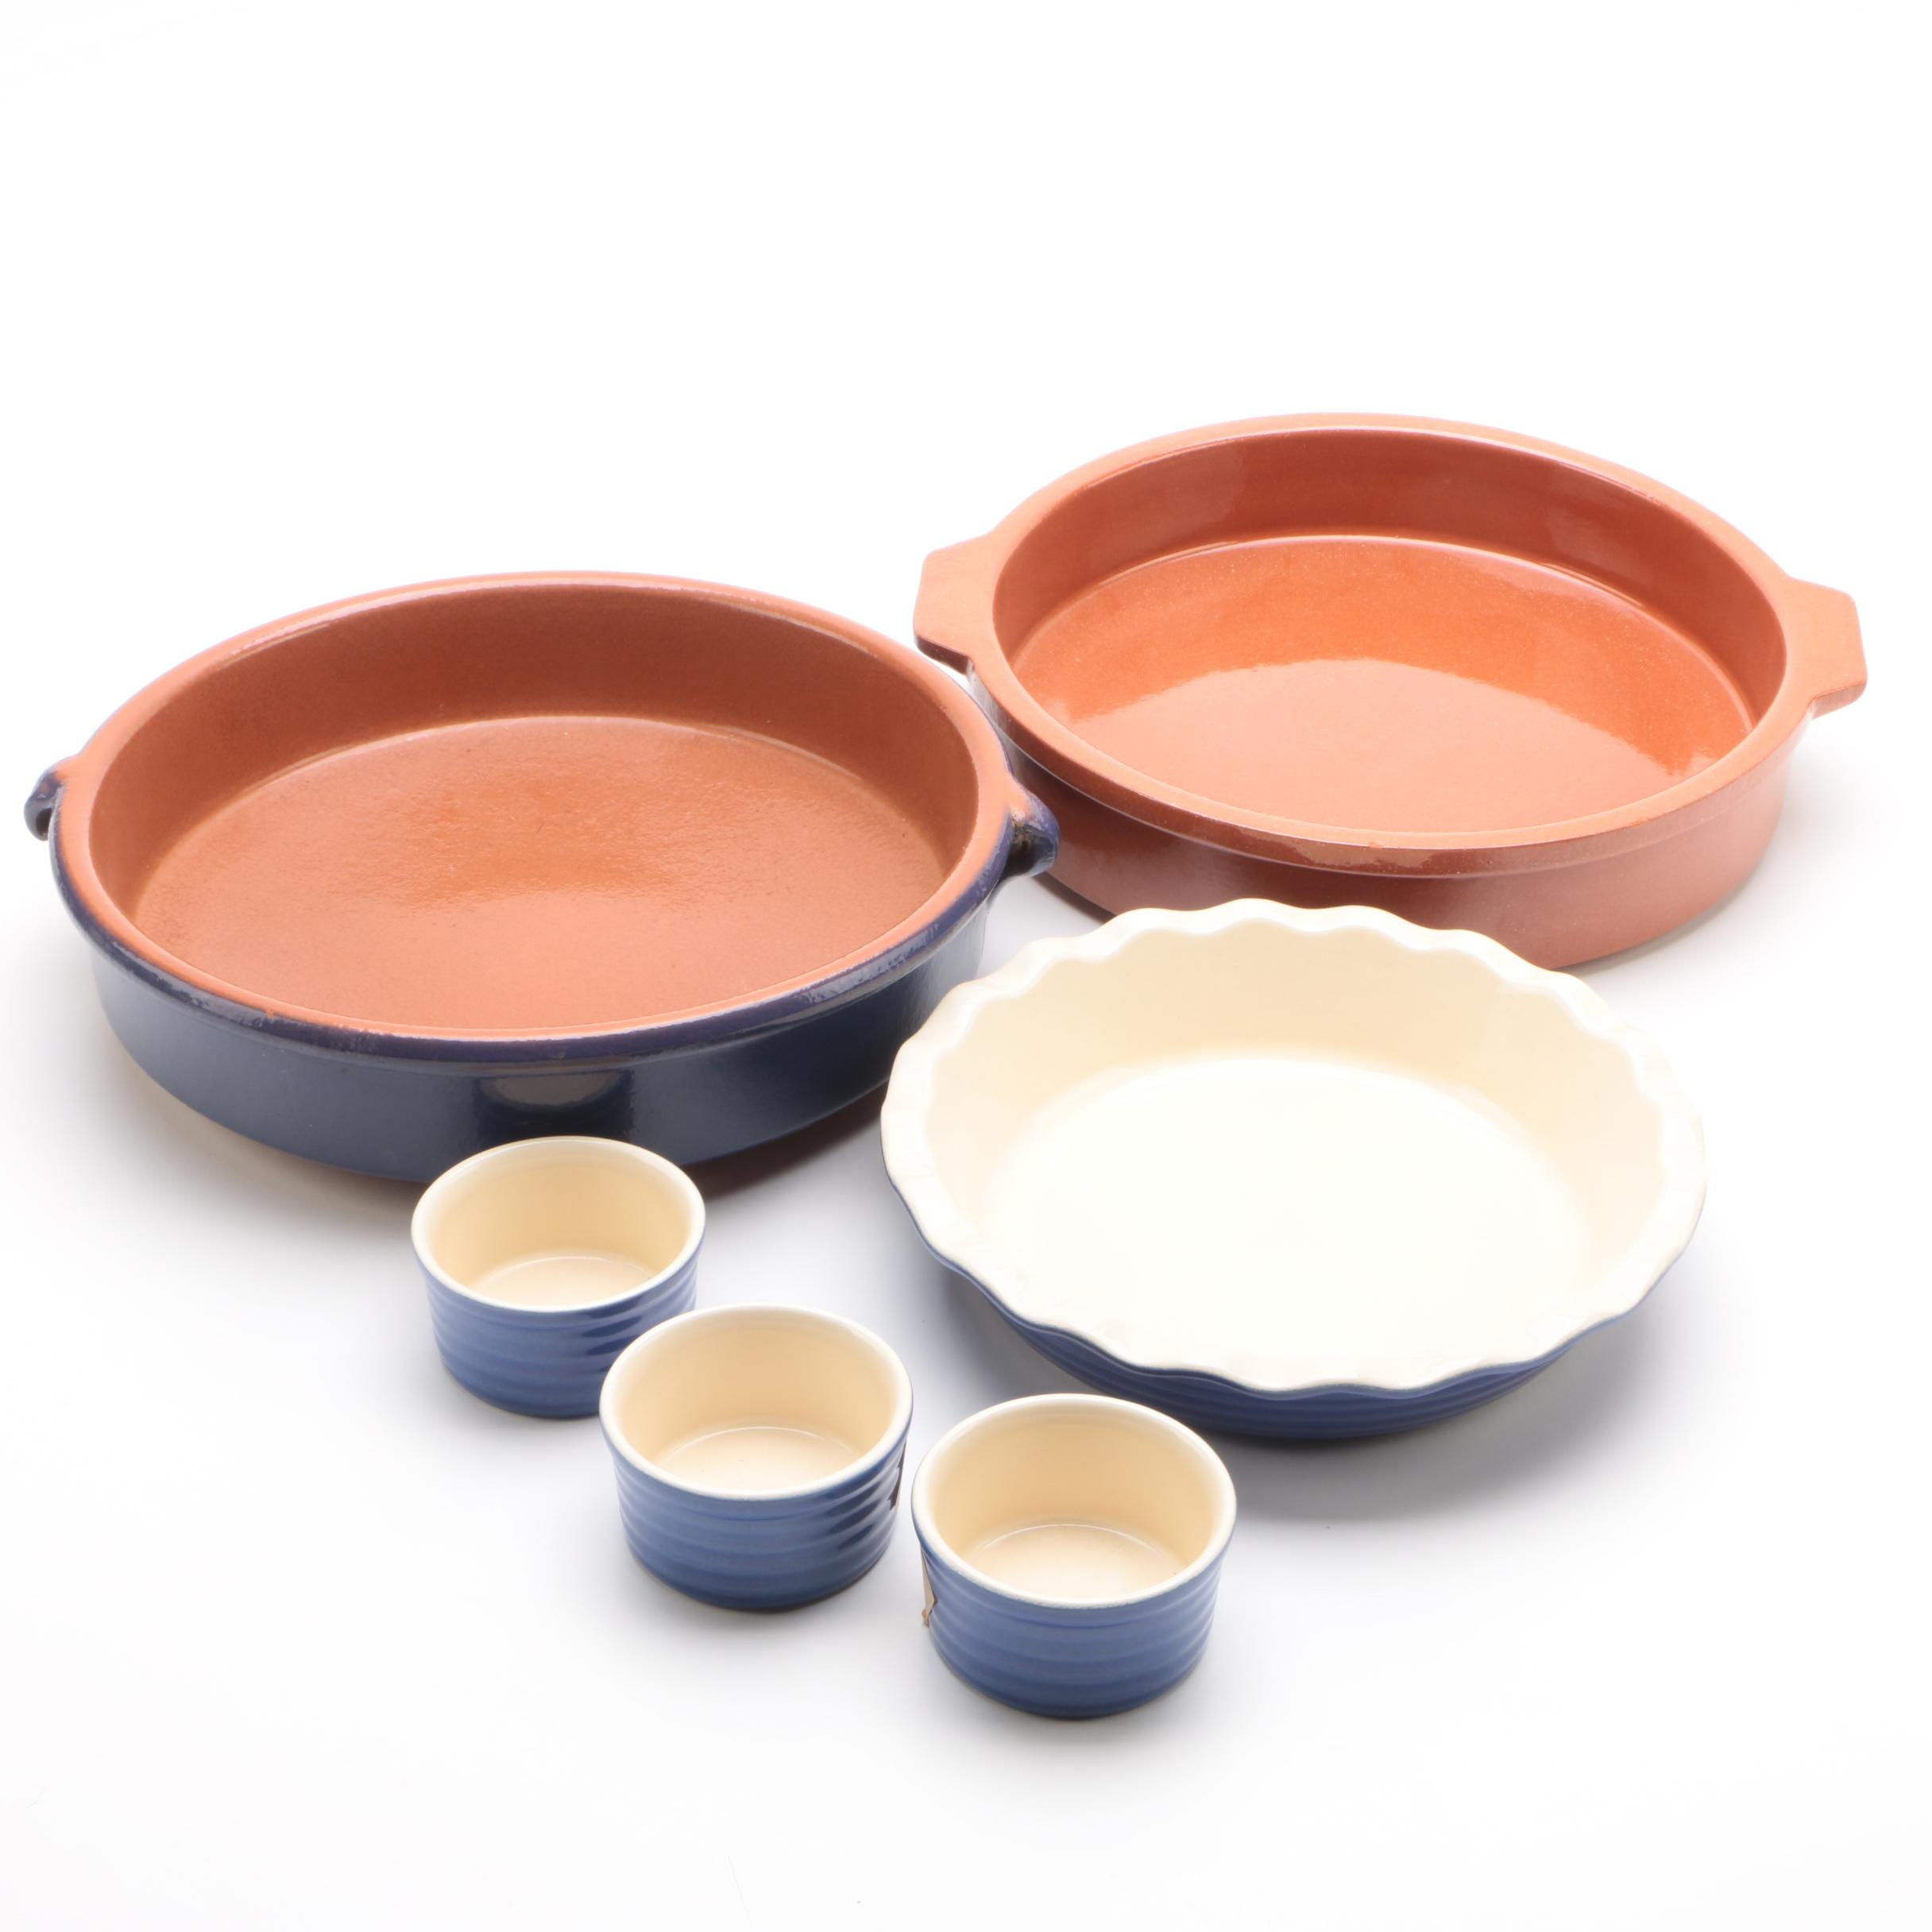 Terracotta and Stoneware Baking Dishes featuring Emile Henry